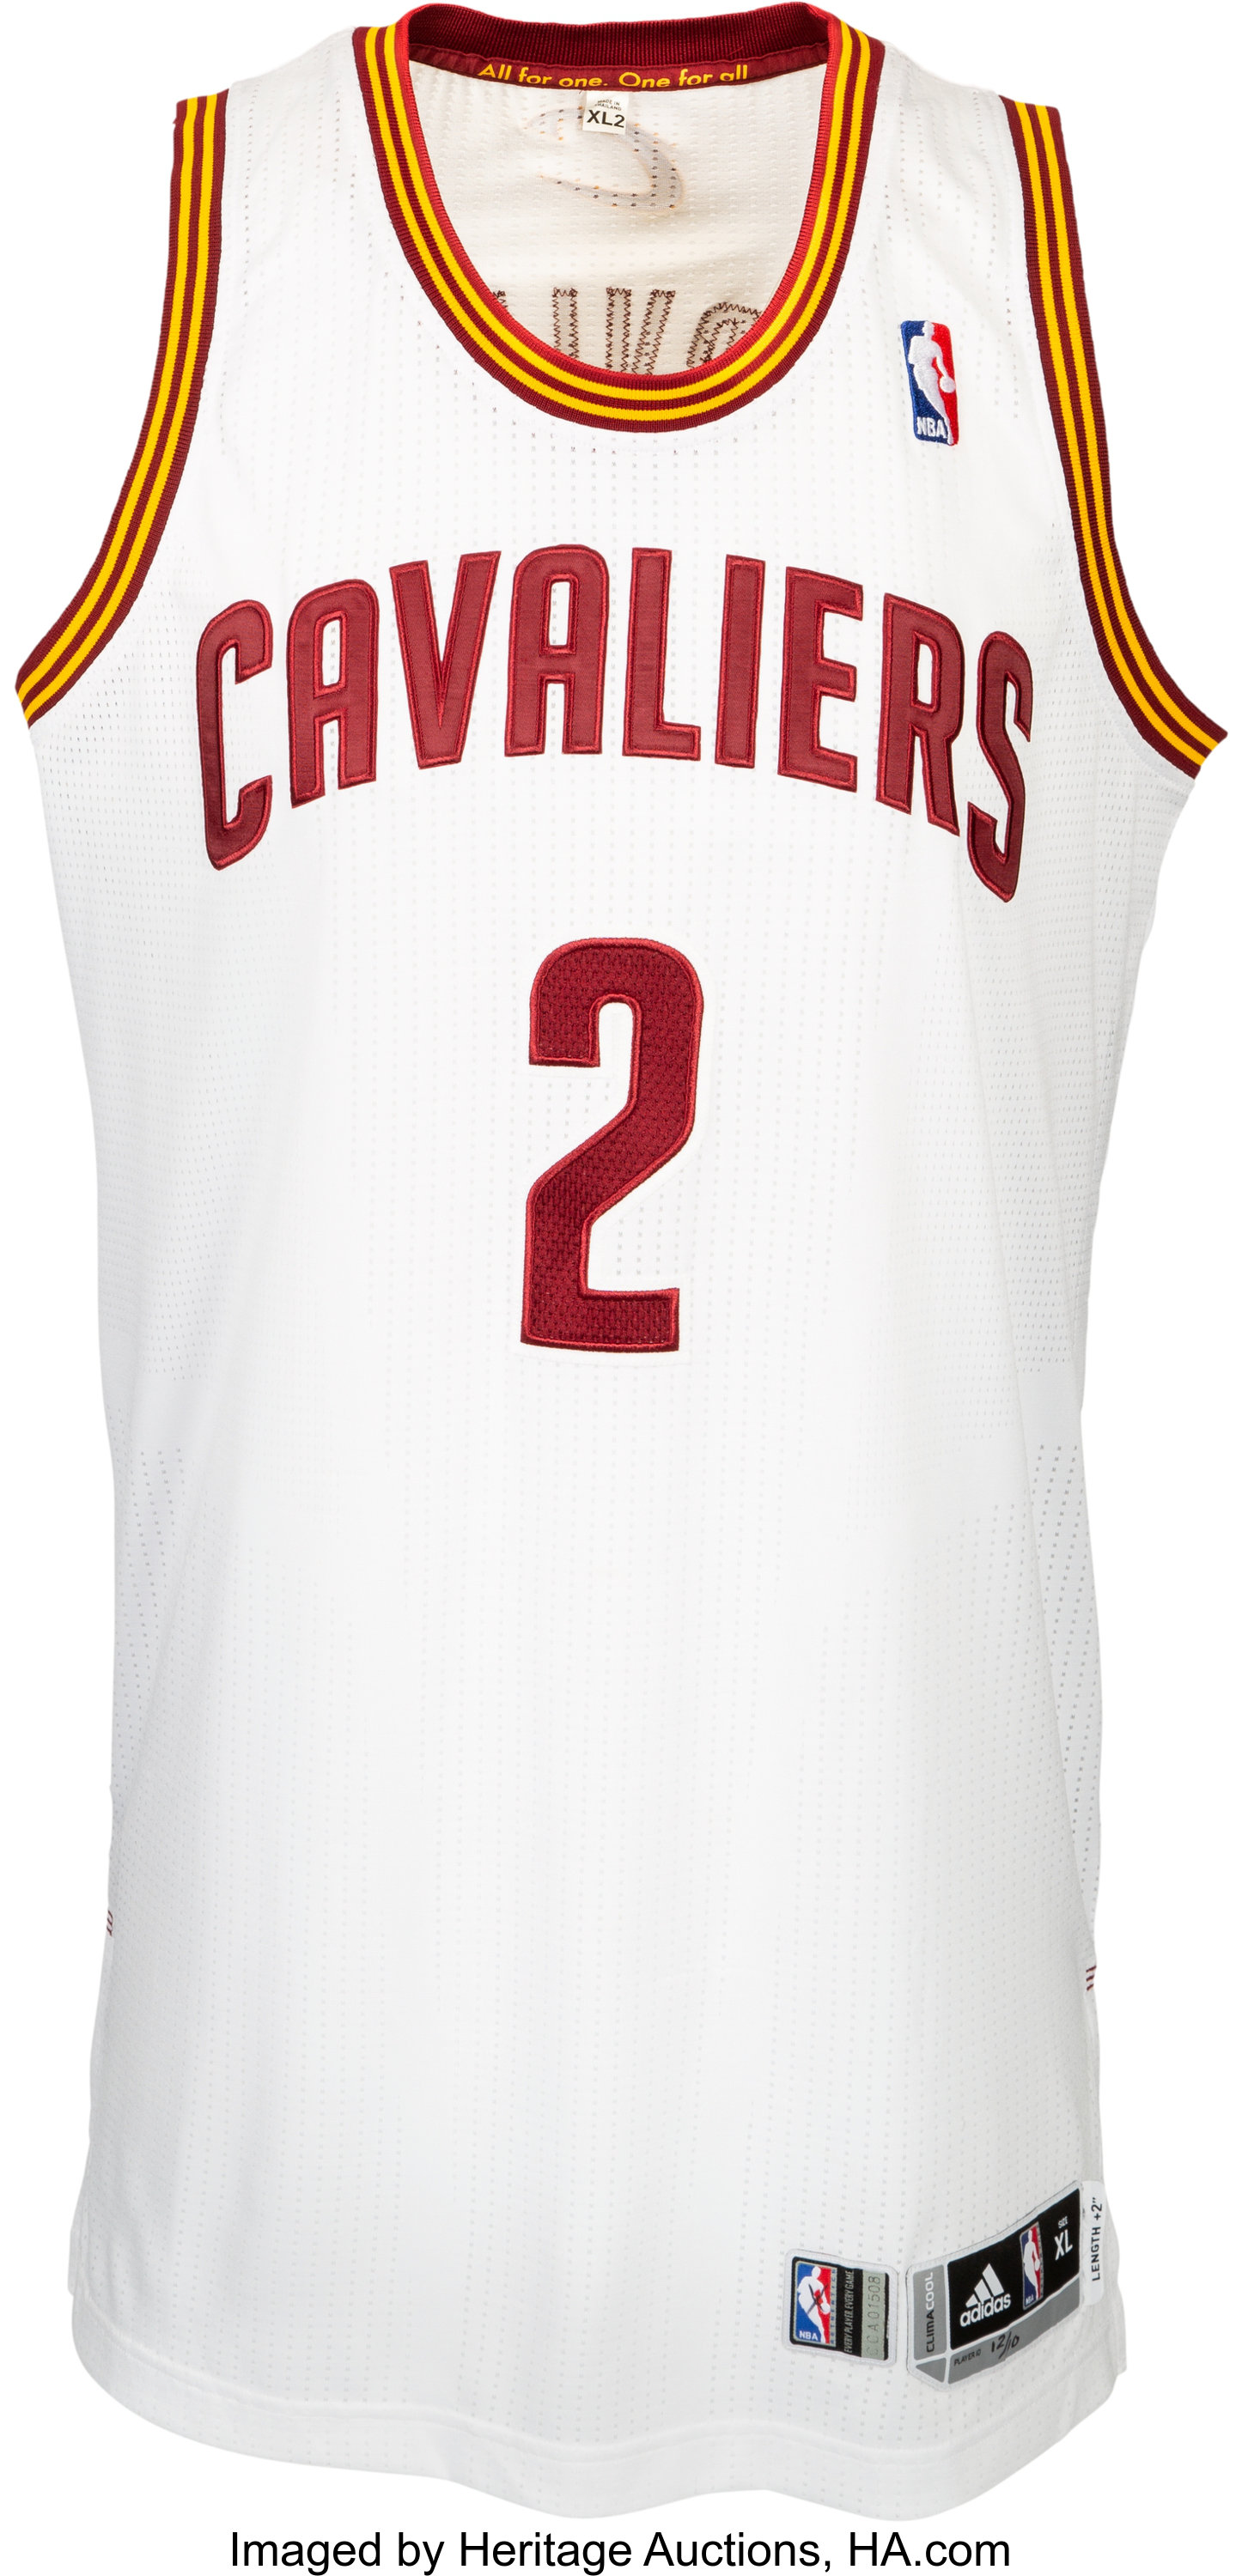 check out ea24f 9c852 2013-14 Kyrie Irving Game Worn Cleveland Cavaliers Jersey 12 ...